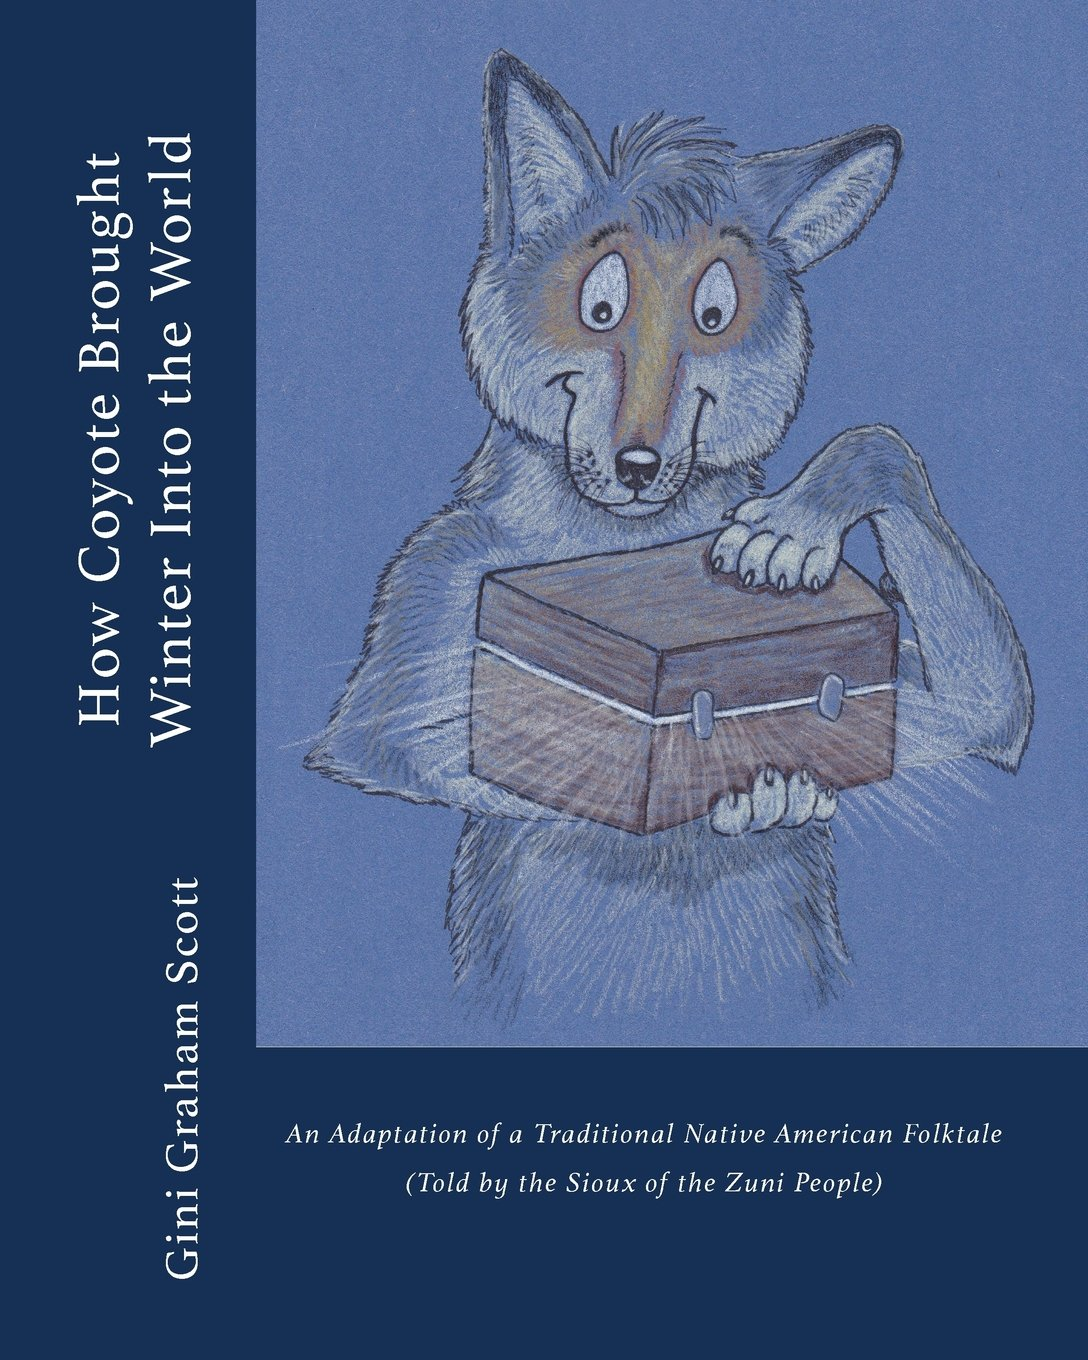 How Coyote Brought Winter Into the World: An Adaptation of a Traditional Native American Folktale (Told by the Zuni People)